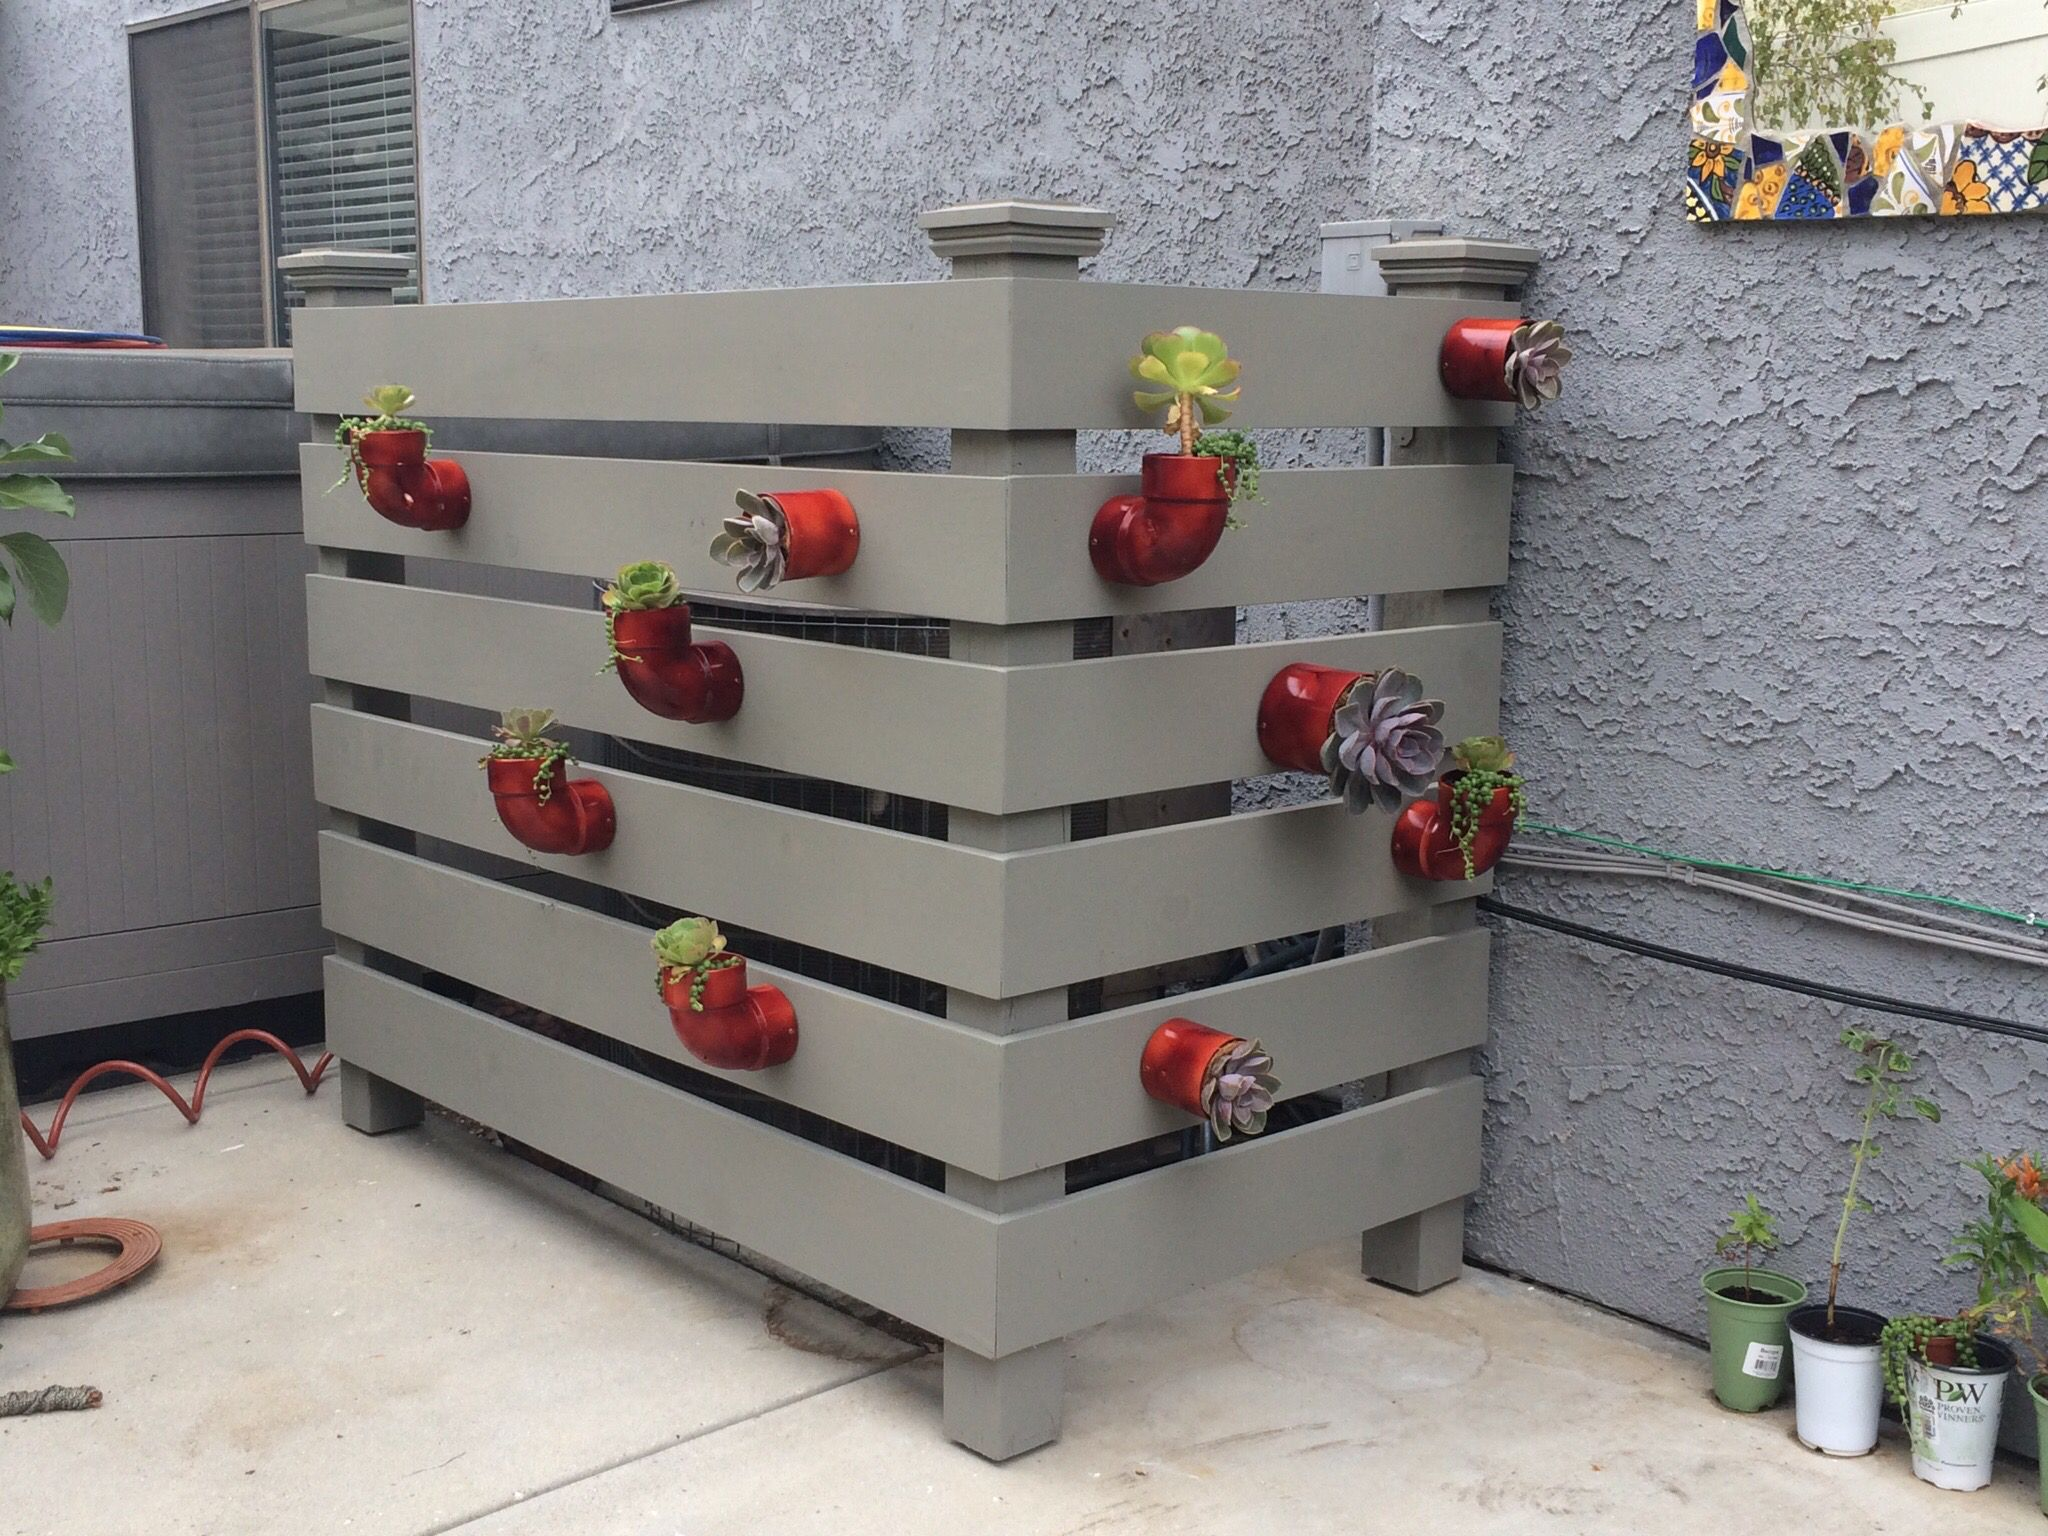 Air conditioner cover garden projects pinterest air for Air conditioning unit covers outside